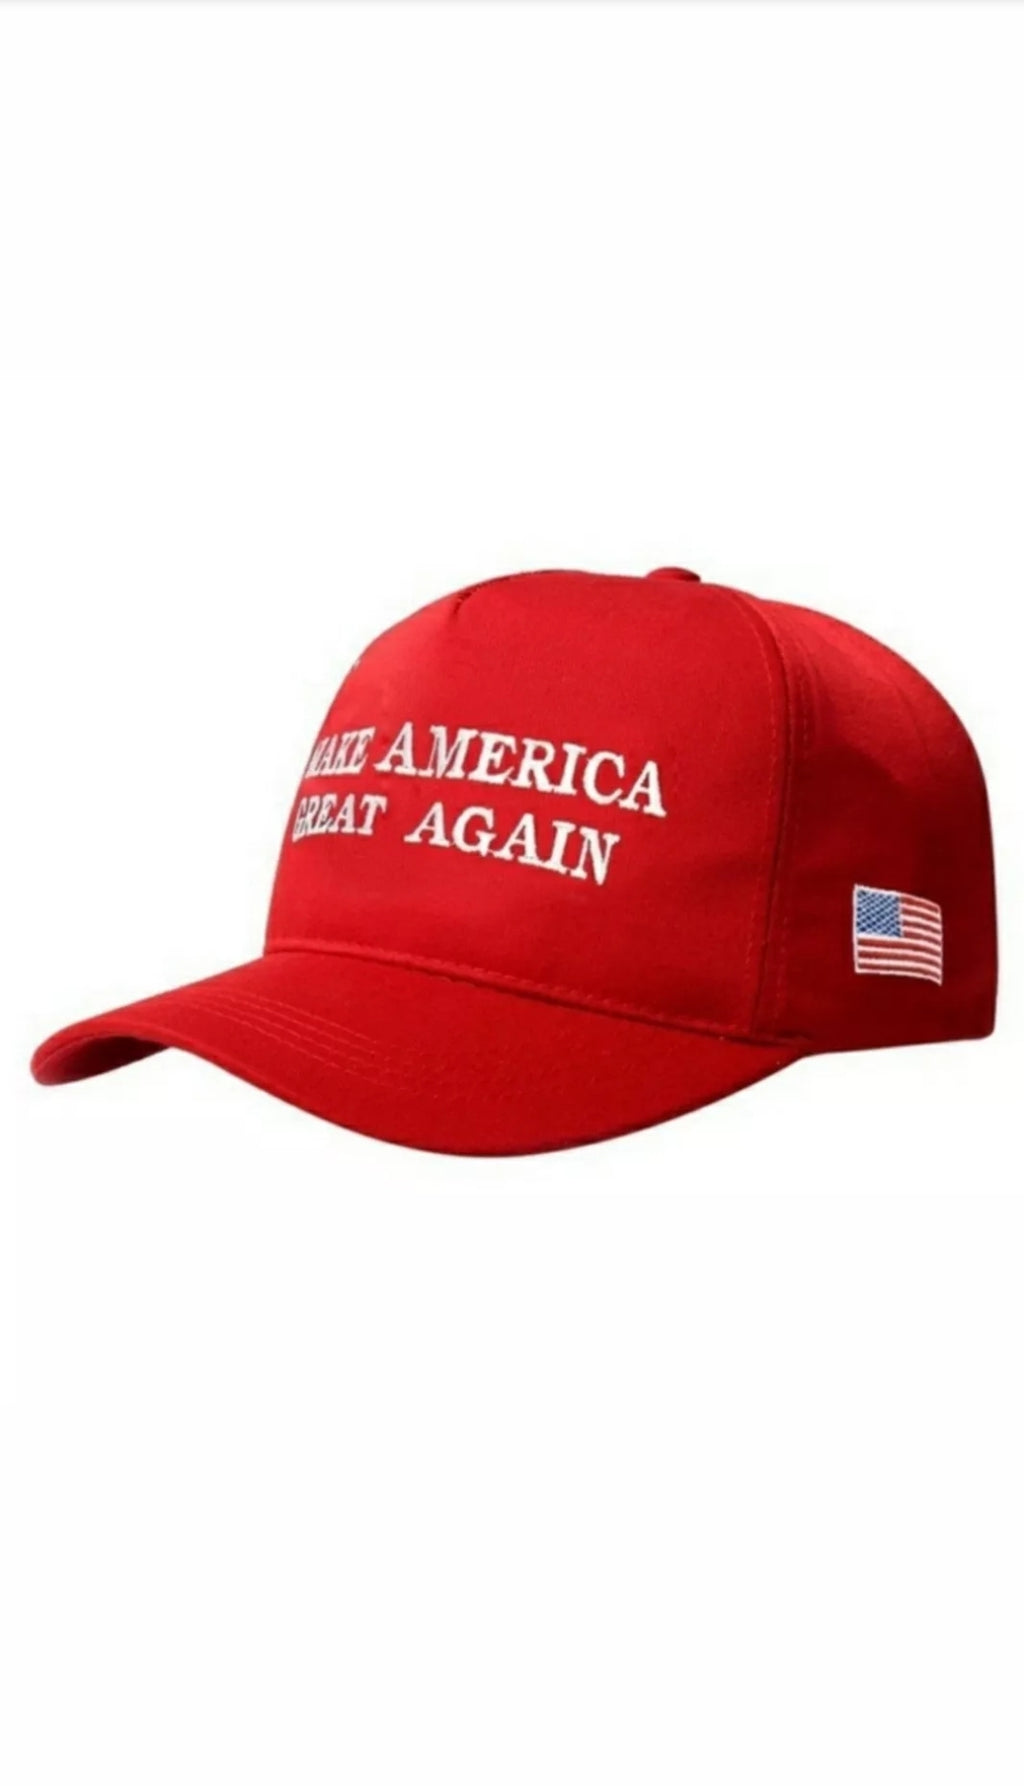 Donald Trump MAGA Hats in Black,white, and classic Red